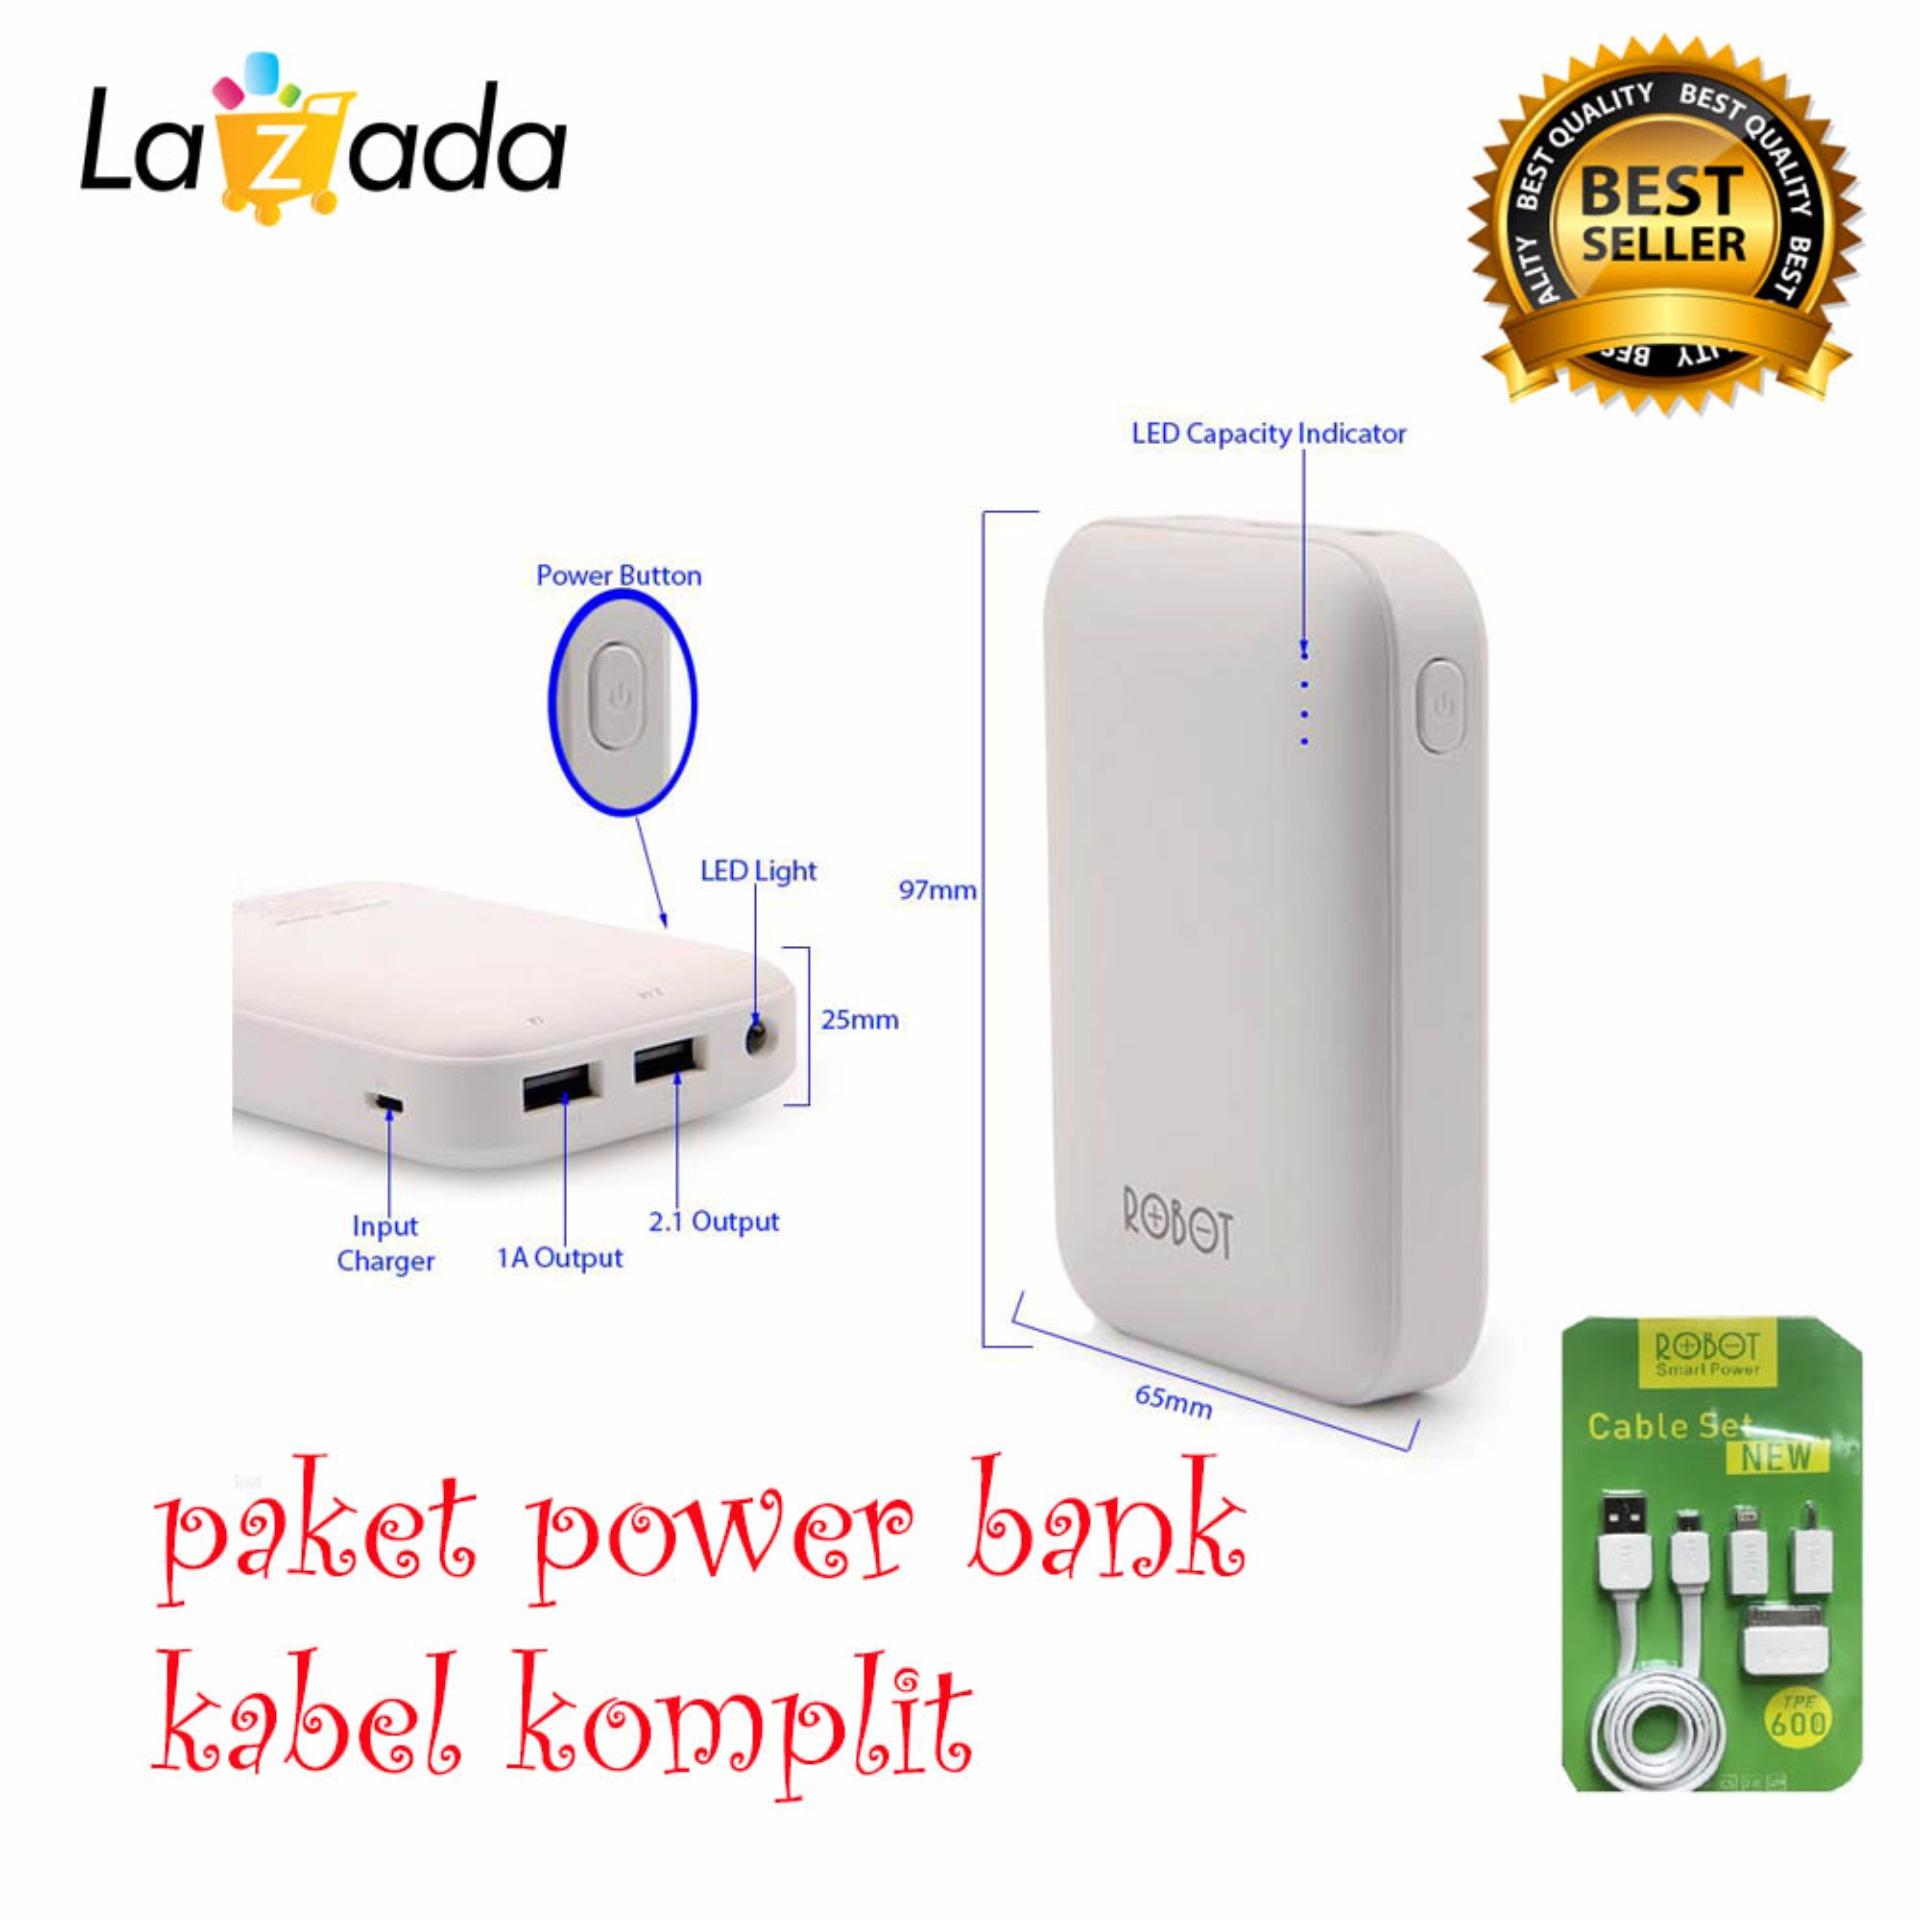 Diskon Robot Powerbank Rt7200 6600Mah Power Bank Dual Output Original Robot Tpe600 Cable Set Micro Usb With 3 Type Connector Putih Branded